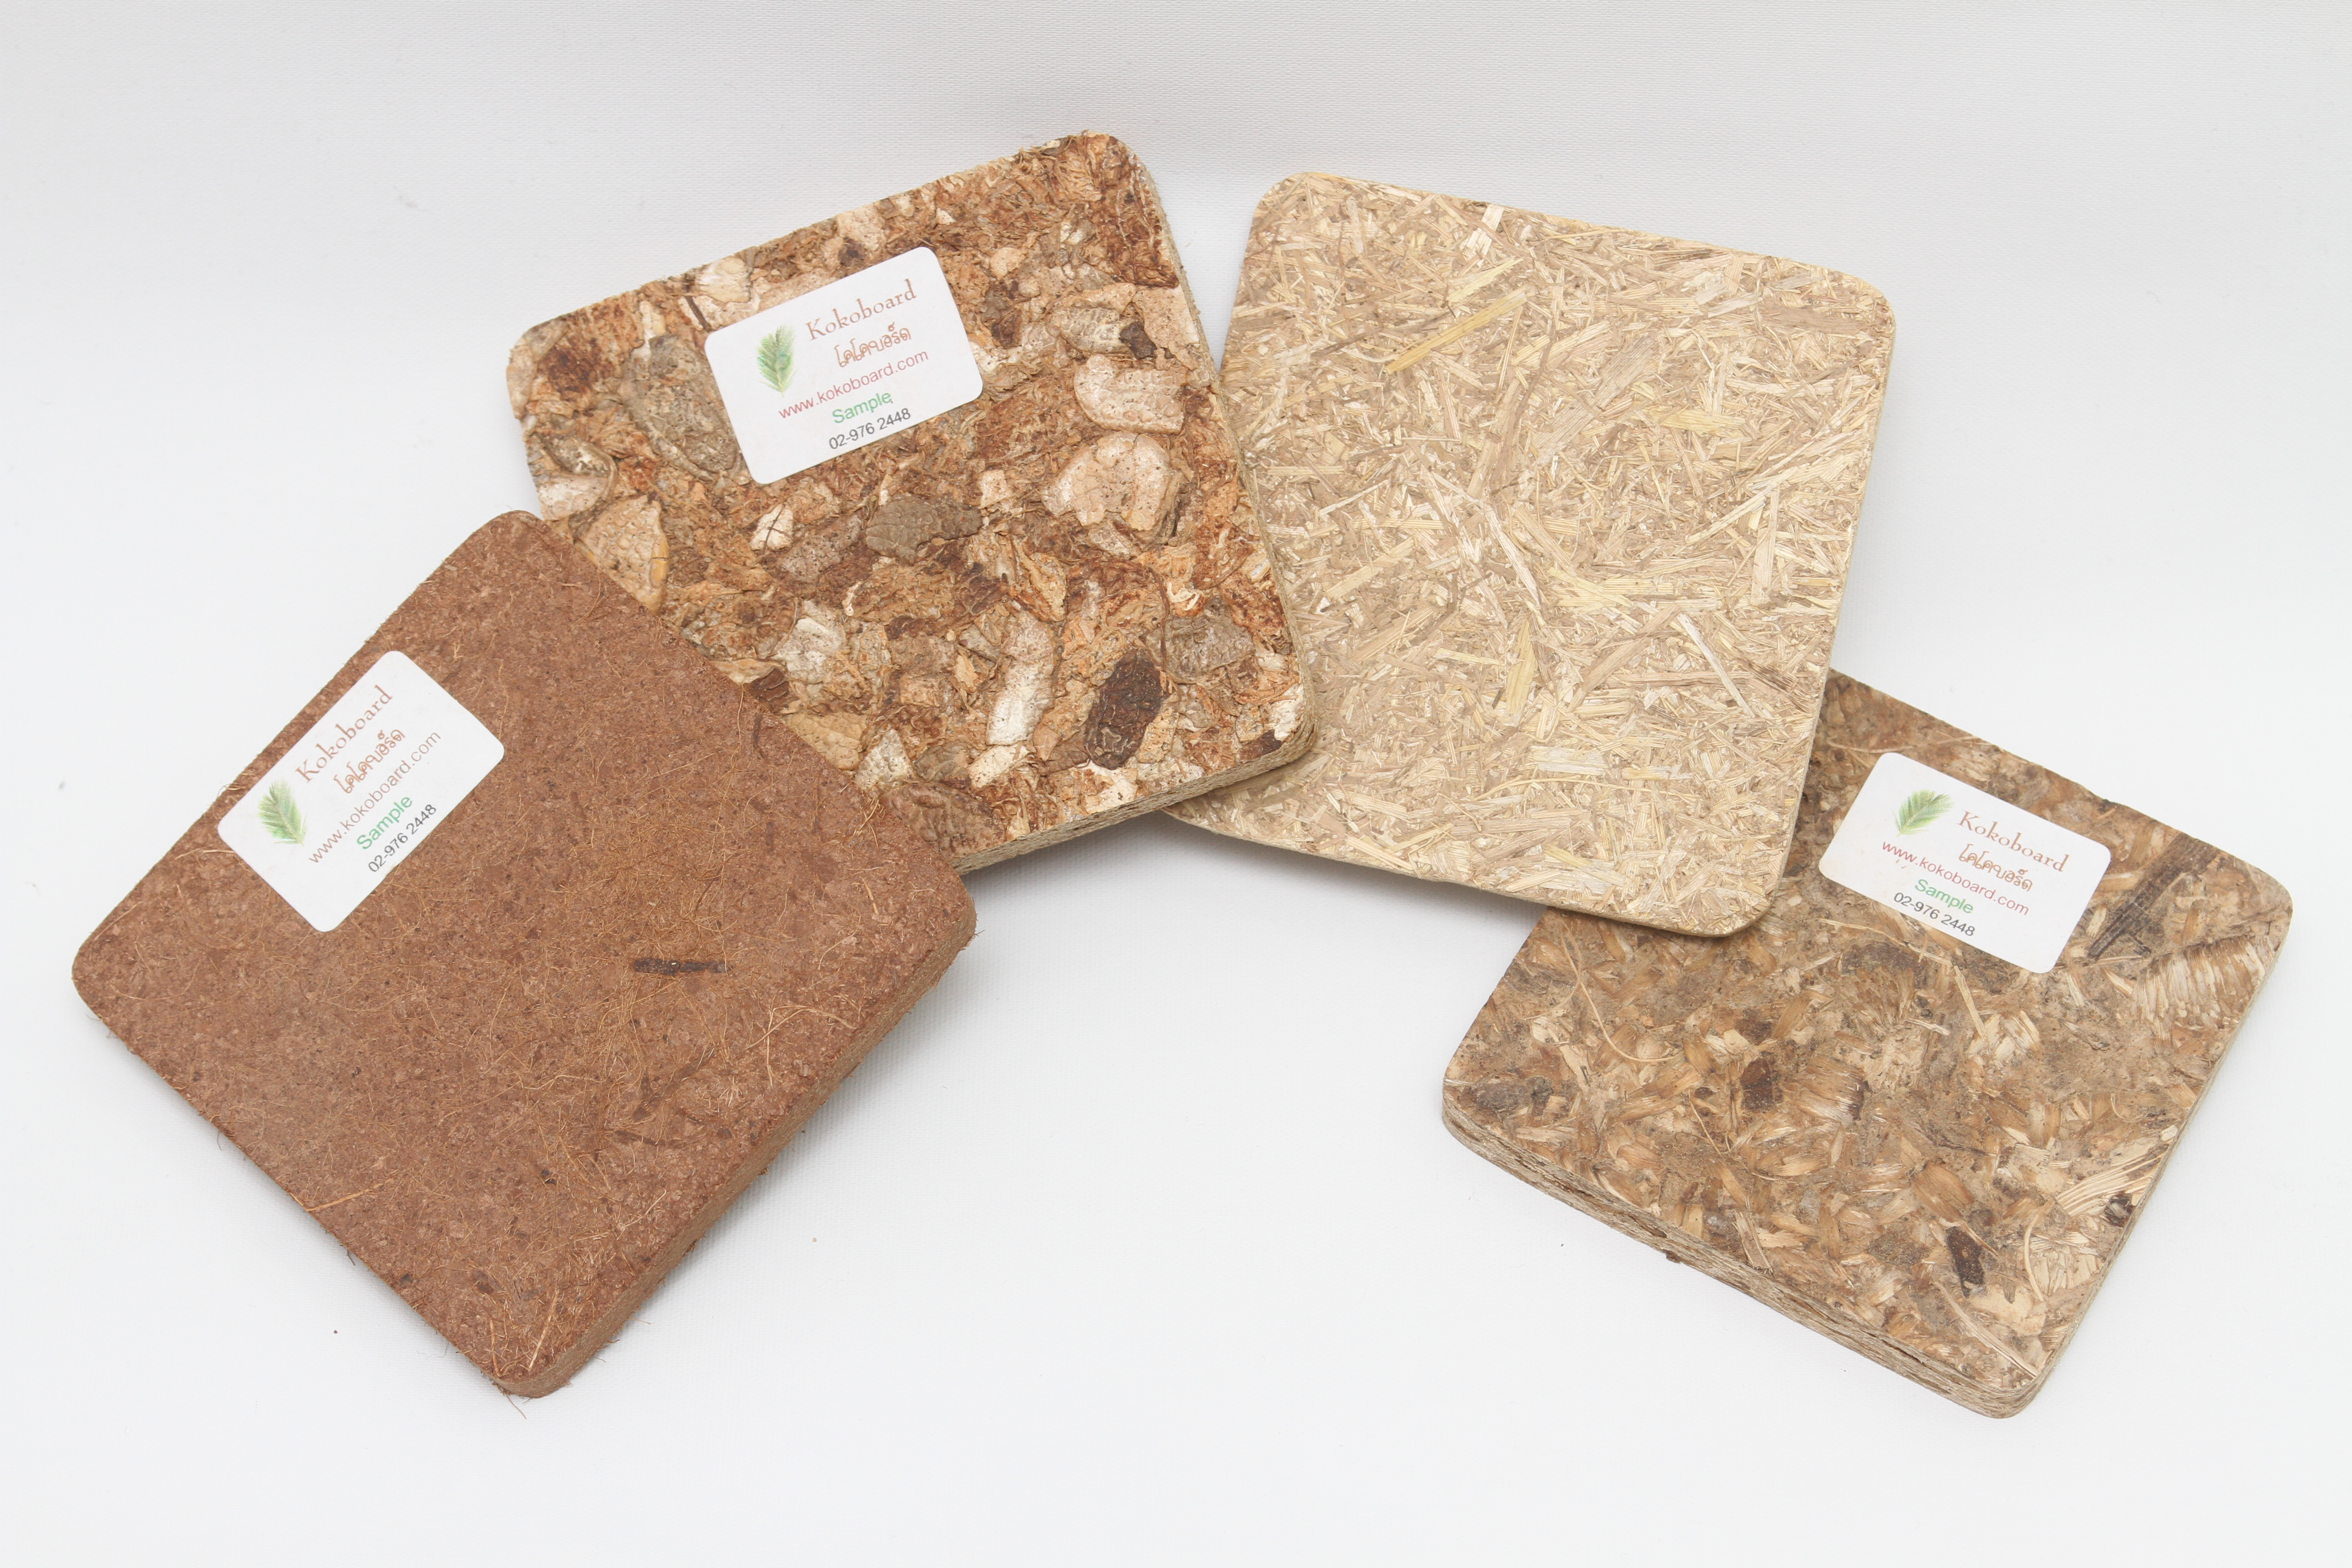 Samples of boards made of waste by products by Kokoboard.